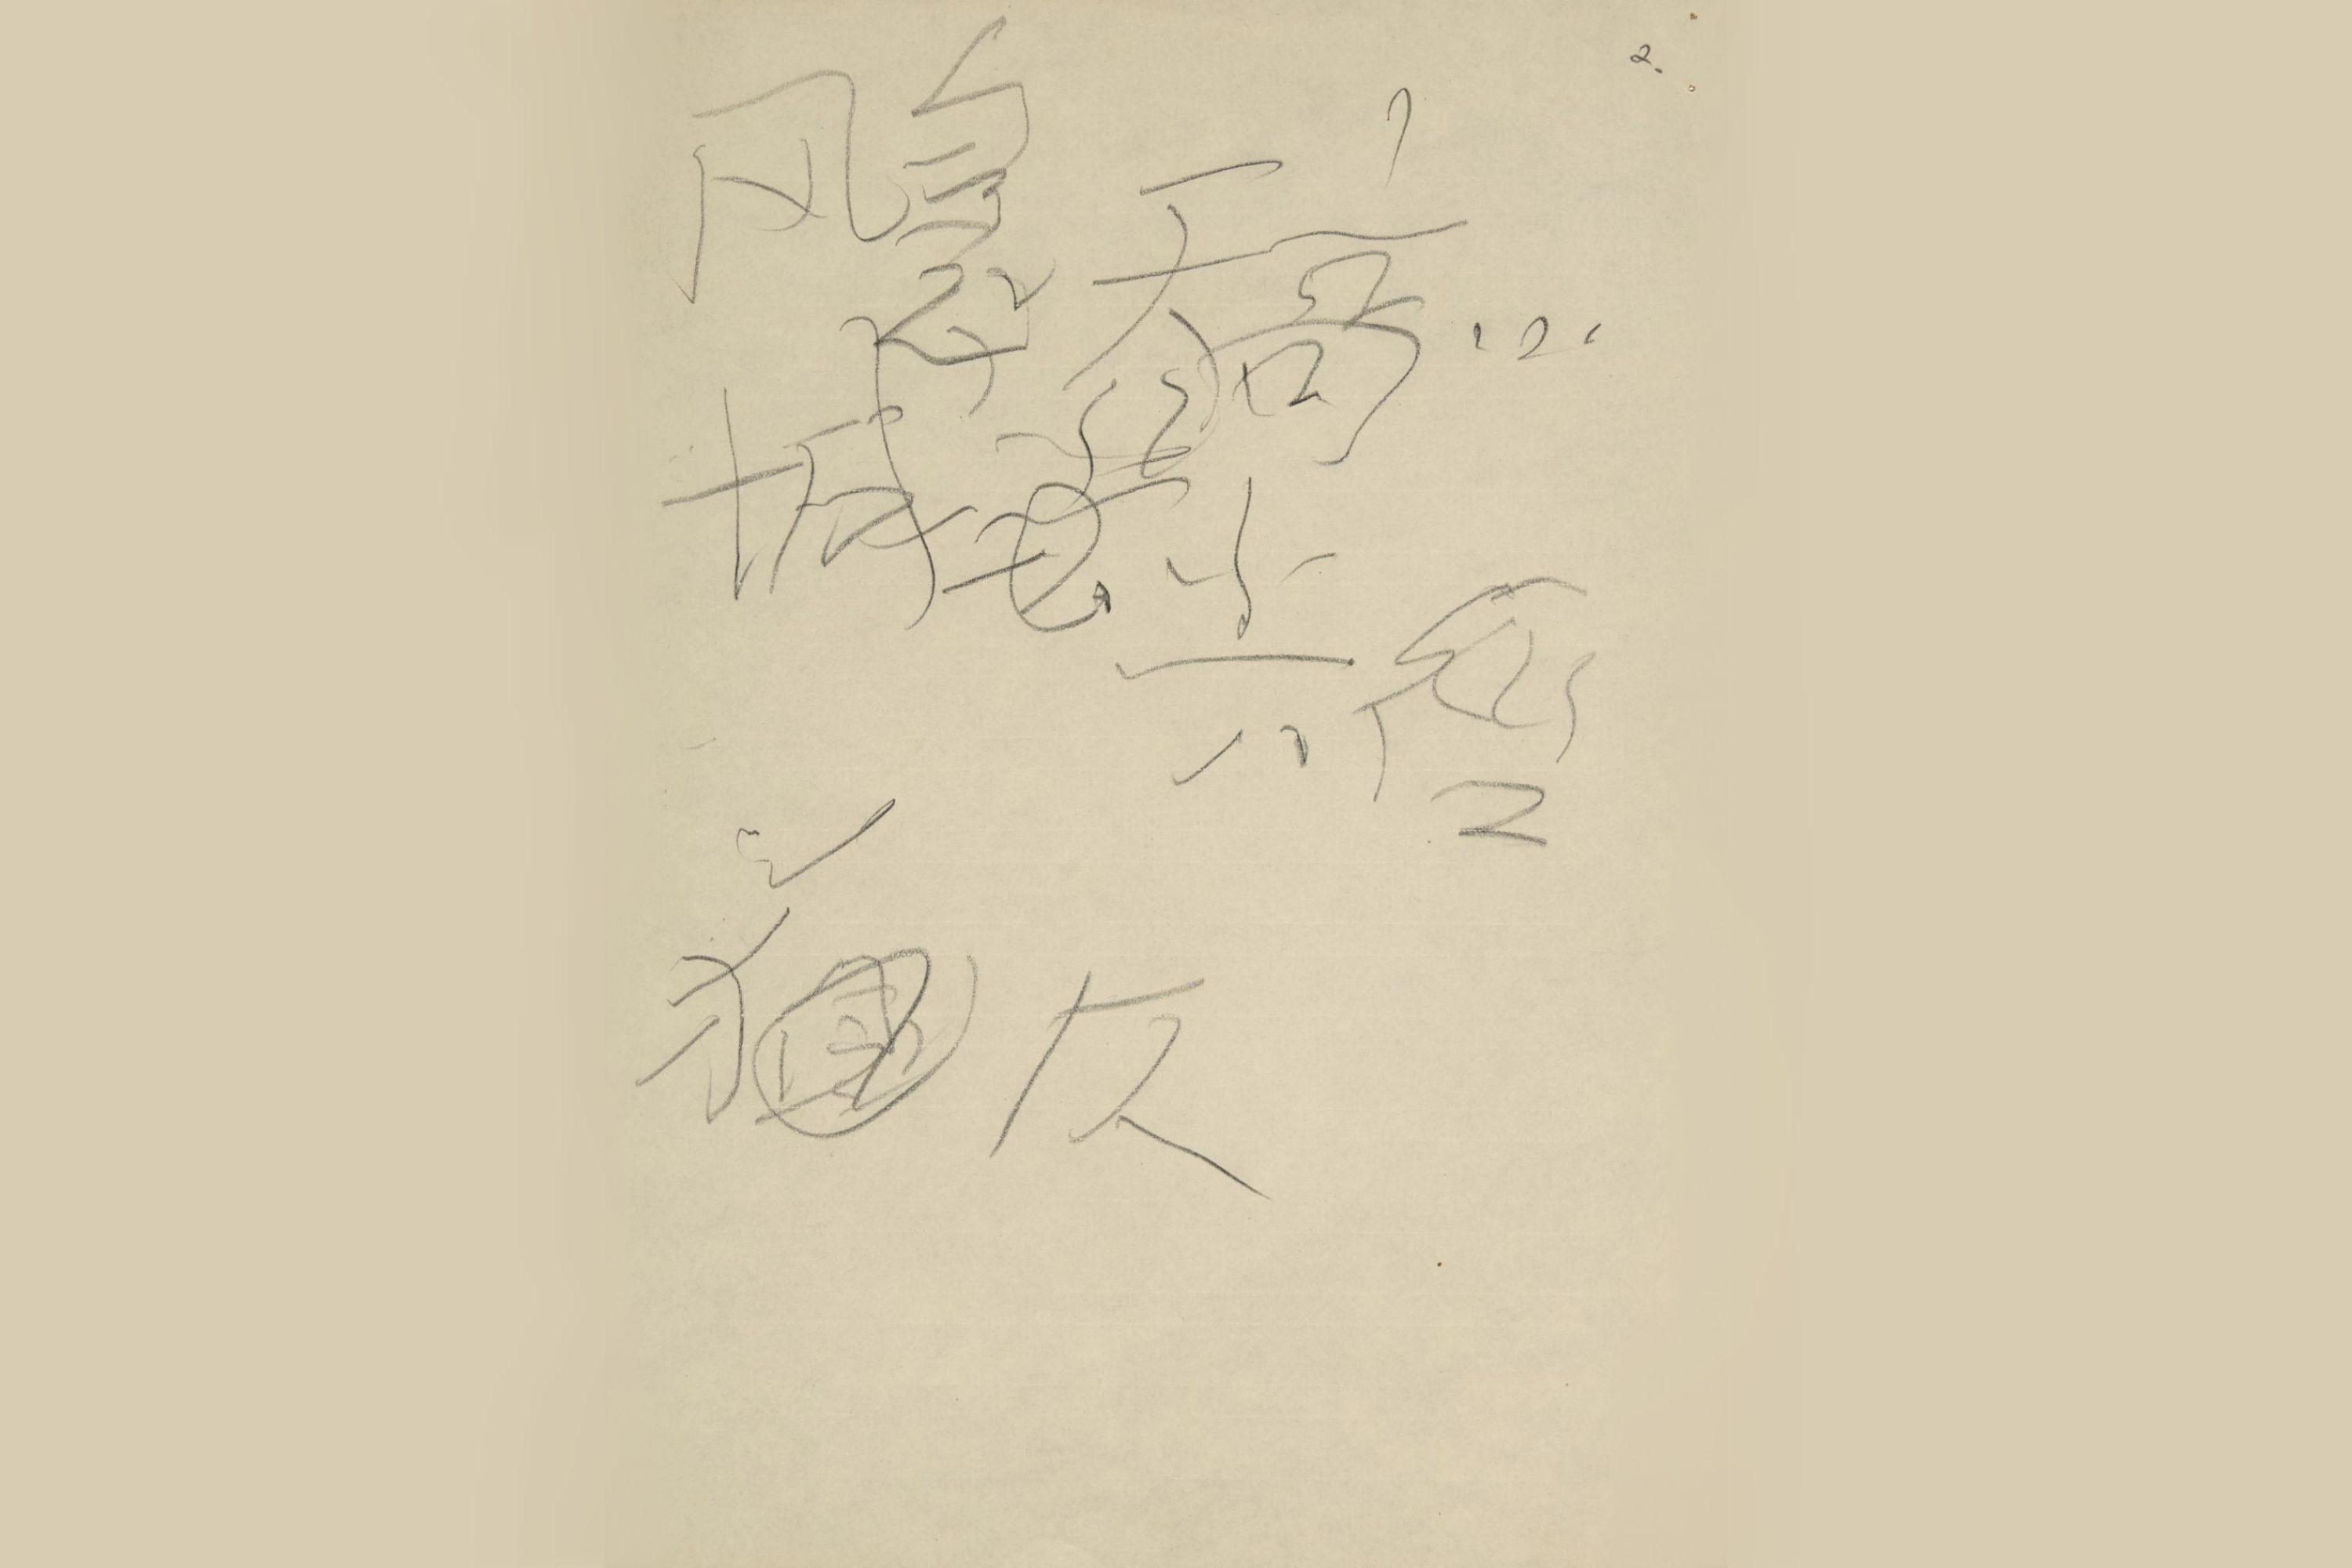 Mao Zedongs Rare Handwritten Notes To Go Under The Hammer For An